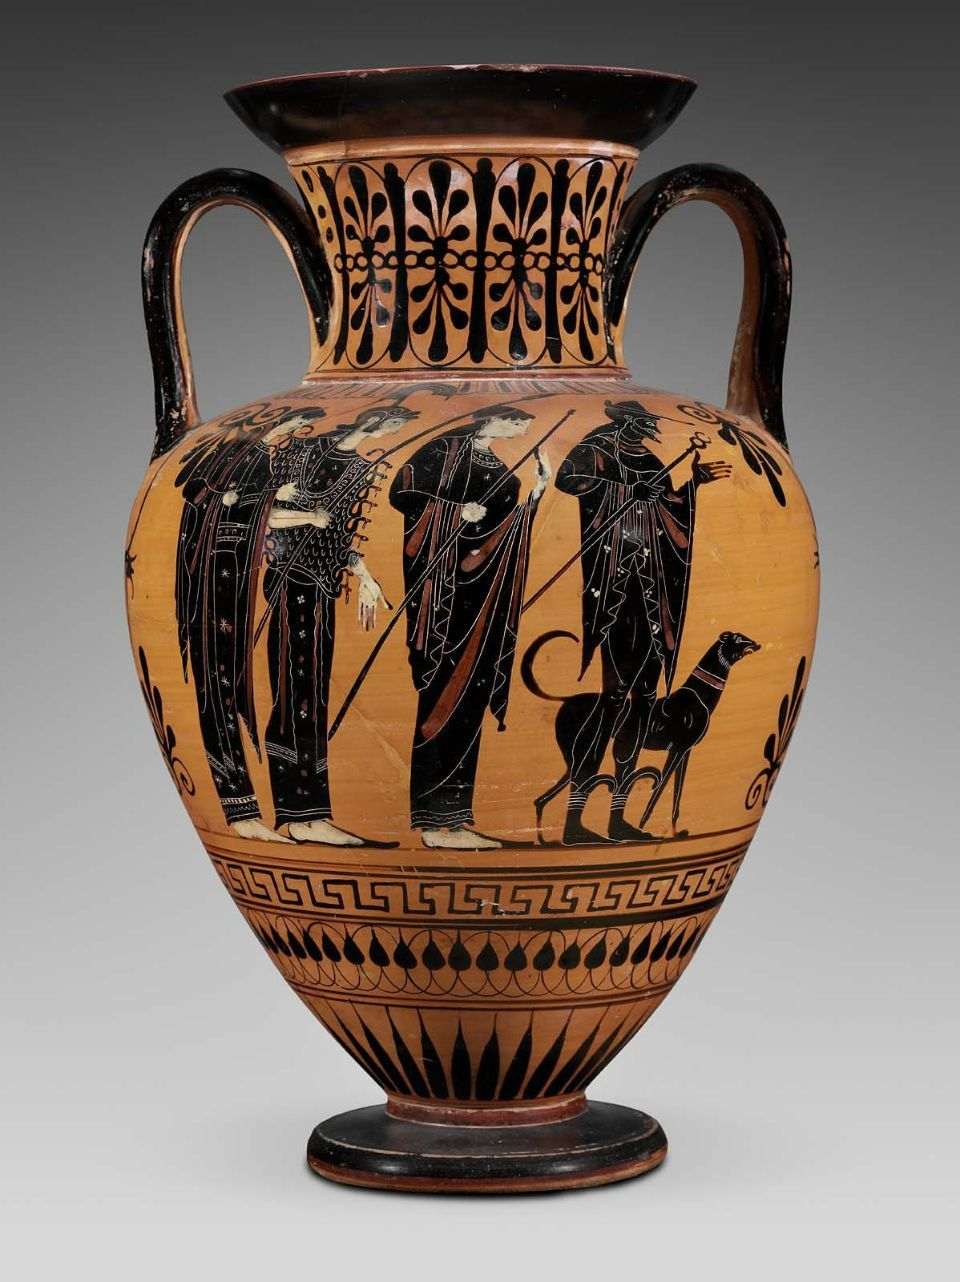 Two-handled jar (amphora) depicting the Judgment of Paris and the recovery of Helen Greek, Late Archaic Period, about 510–500 B.C. Side A: Judgment of Paris. Hermes, with a dog walking beside him, leads Hera, holding a long scepter, Athena, fully-armed, and Aphrodite.